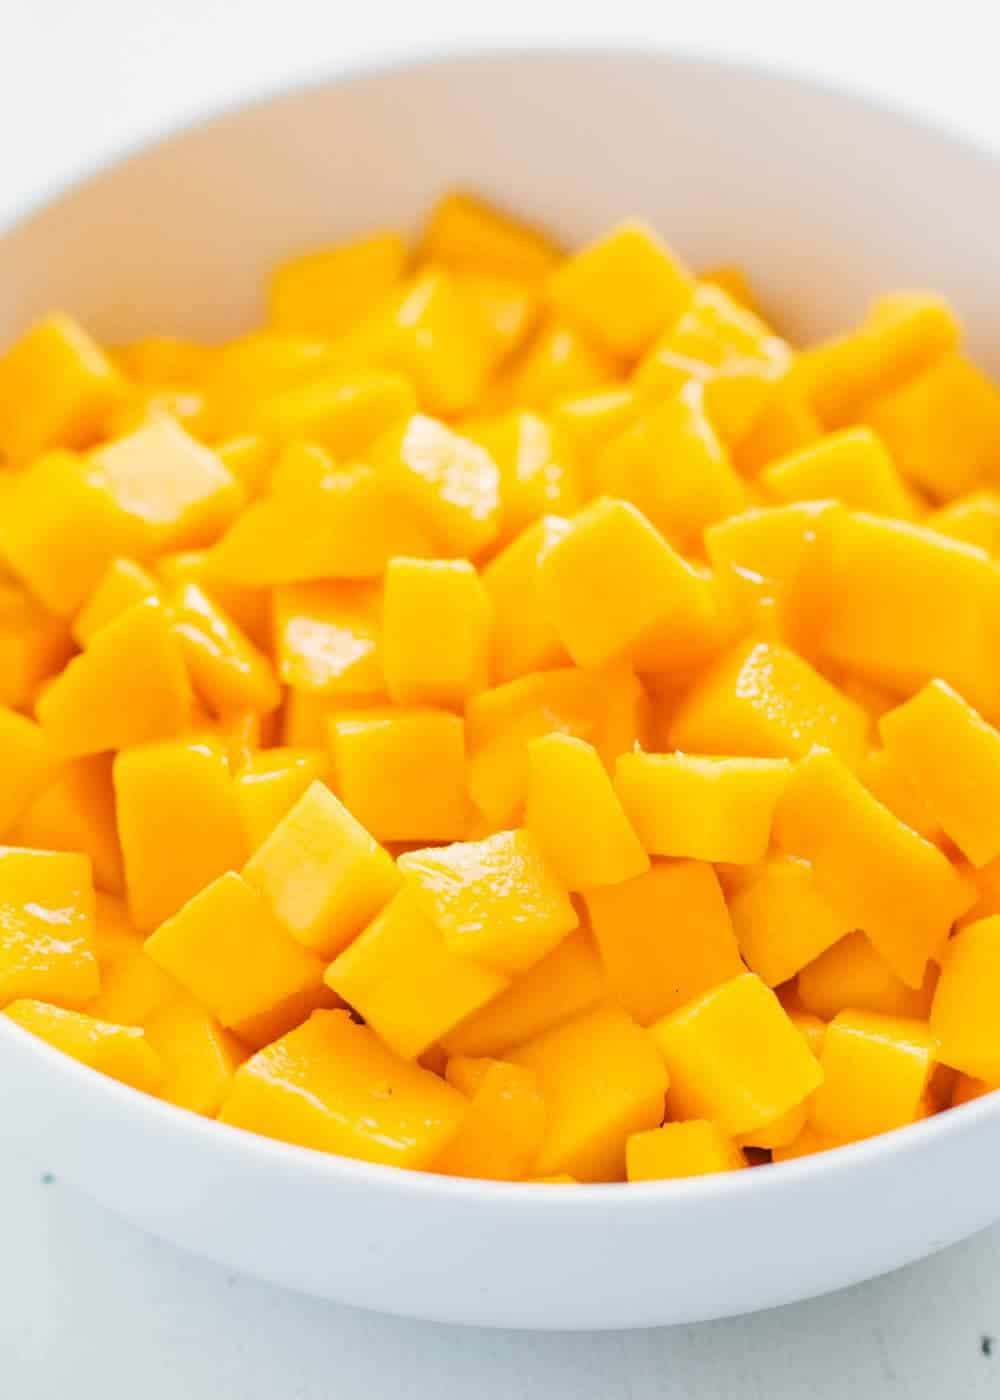 diced mango in a white bowl